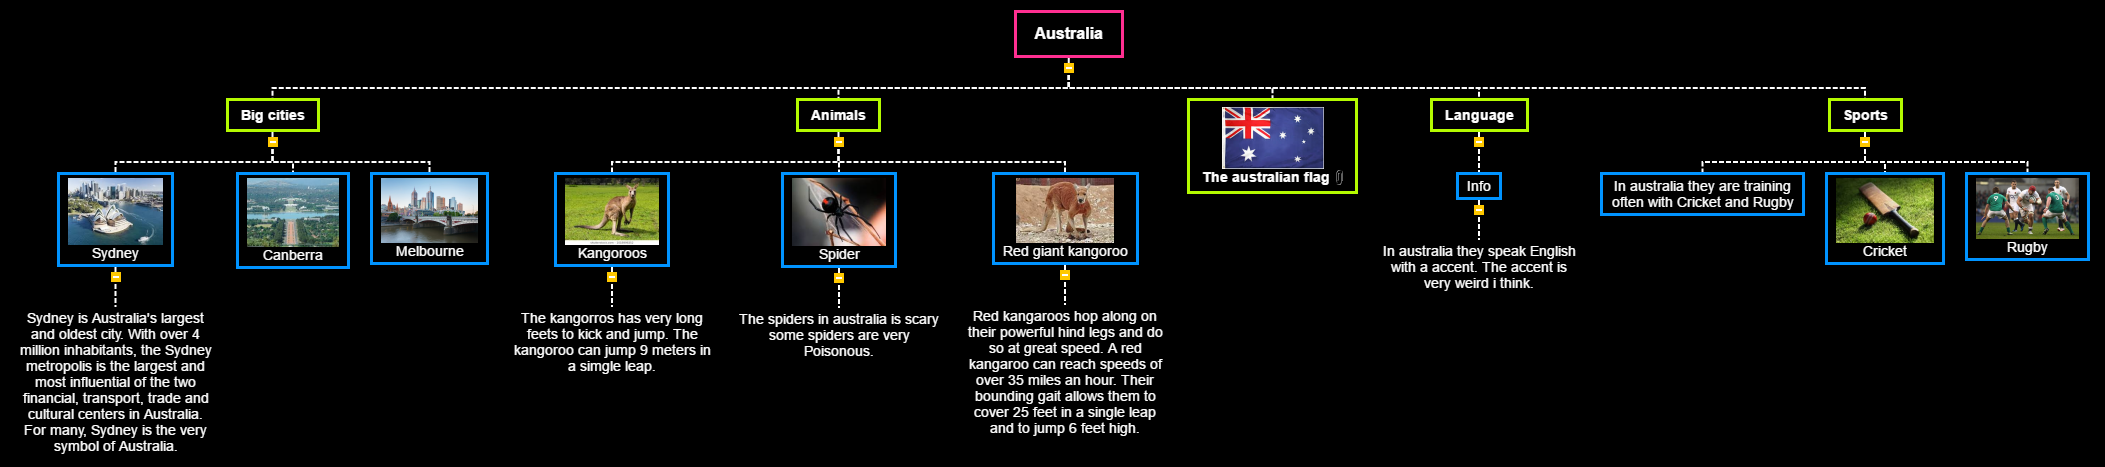 Australia of markus kvam Mind Map